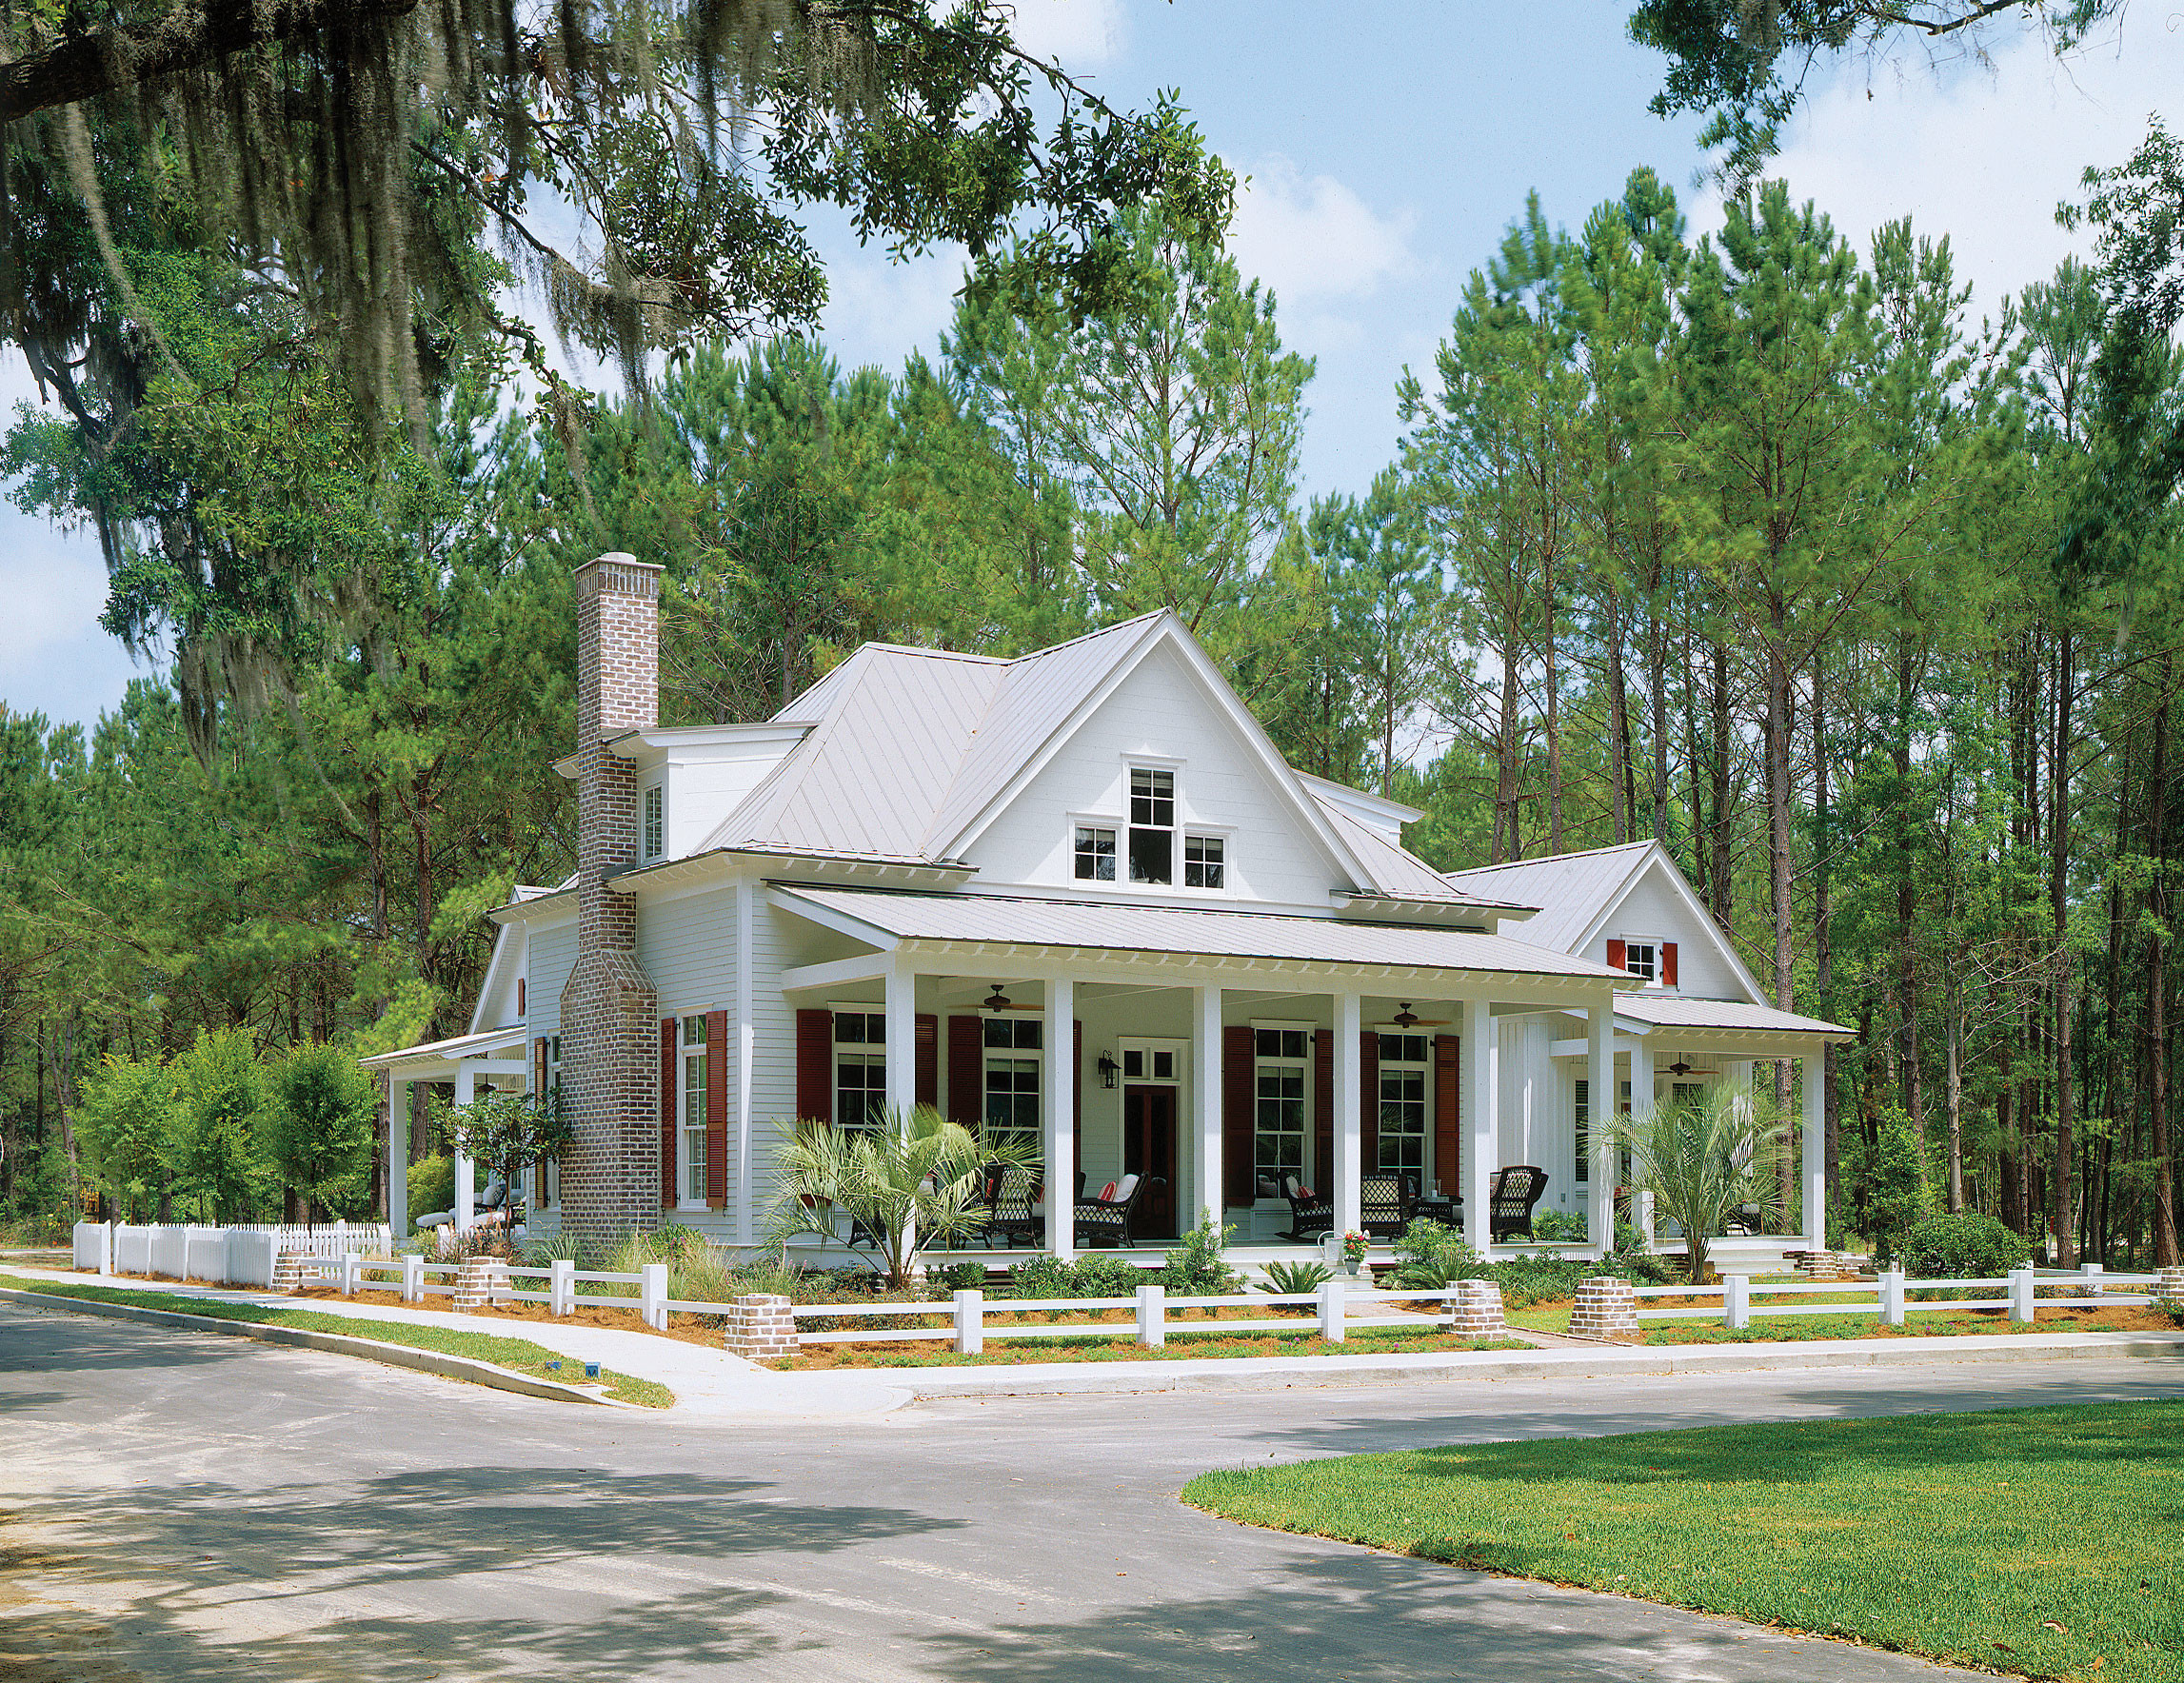 100+ [ Top Selling House Plans ] | Metal Building Homes For Sale ...